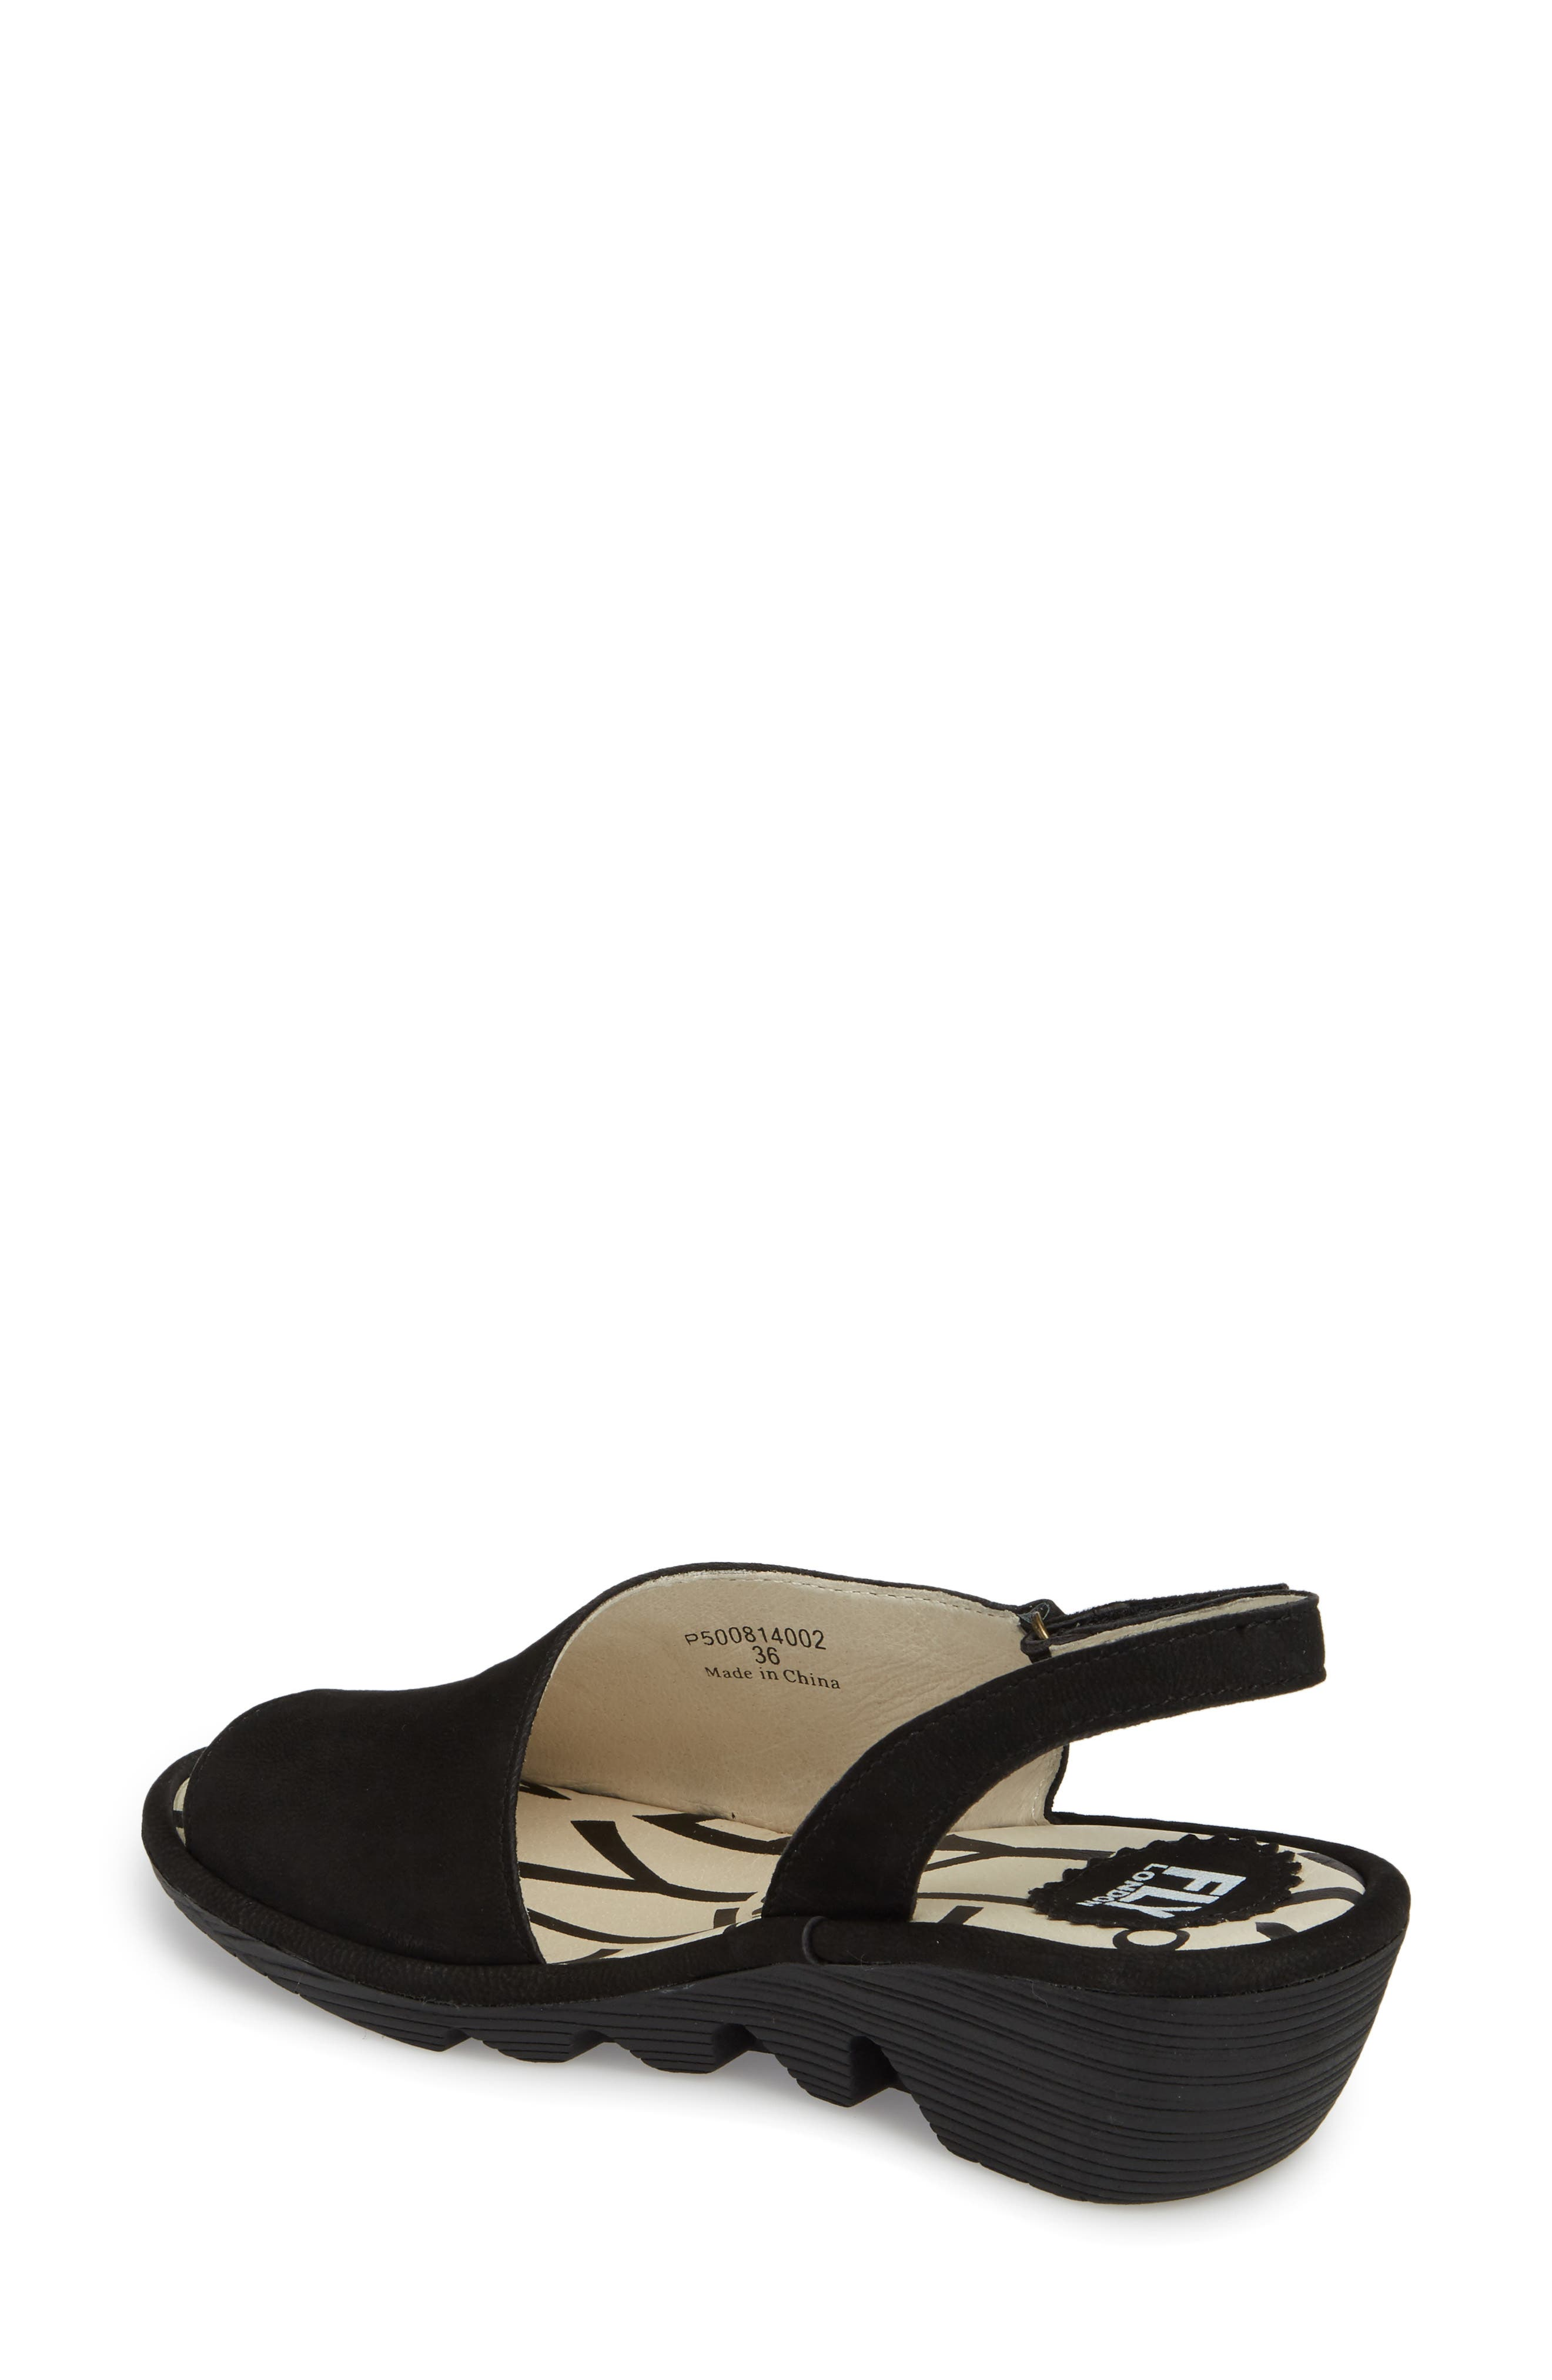 FLY LONDON, Palp Wedge Sandal, Alternate thumbnail 2, color, BLACK CUPIDO LEATHER